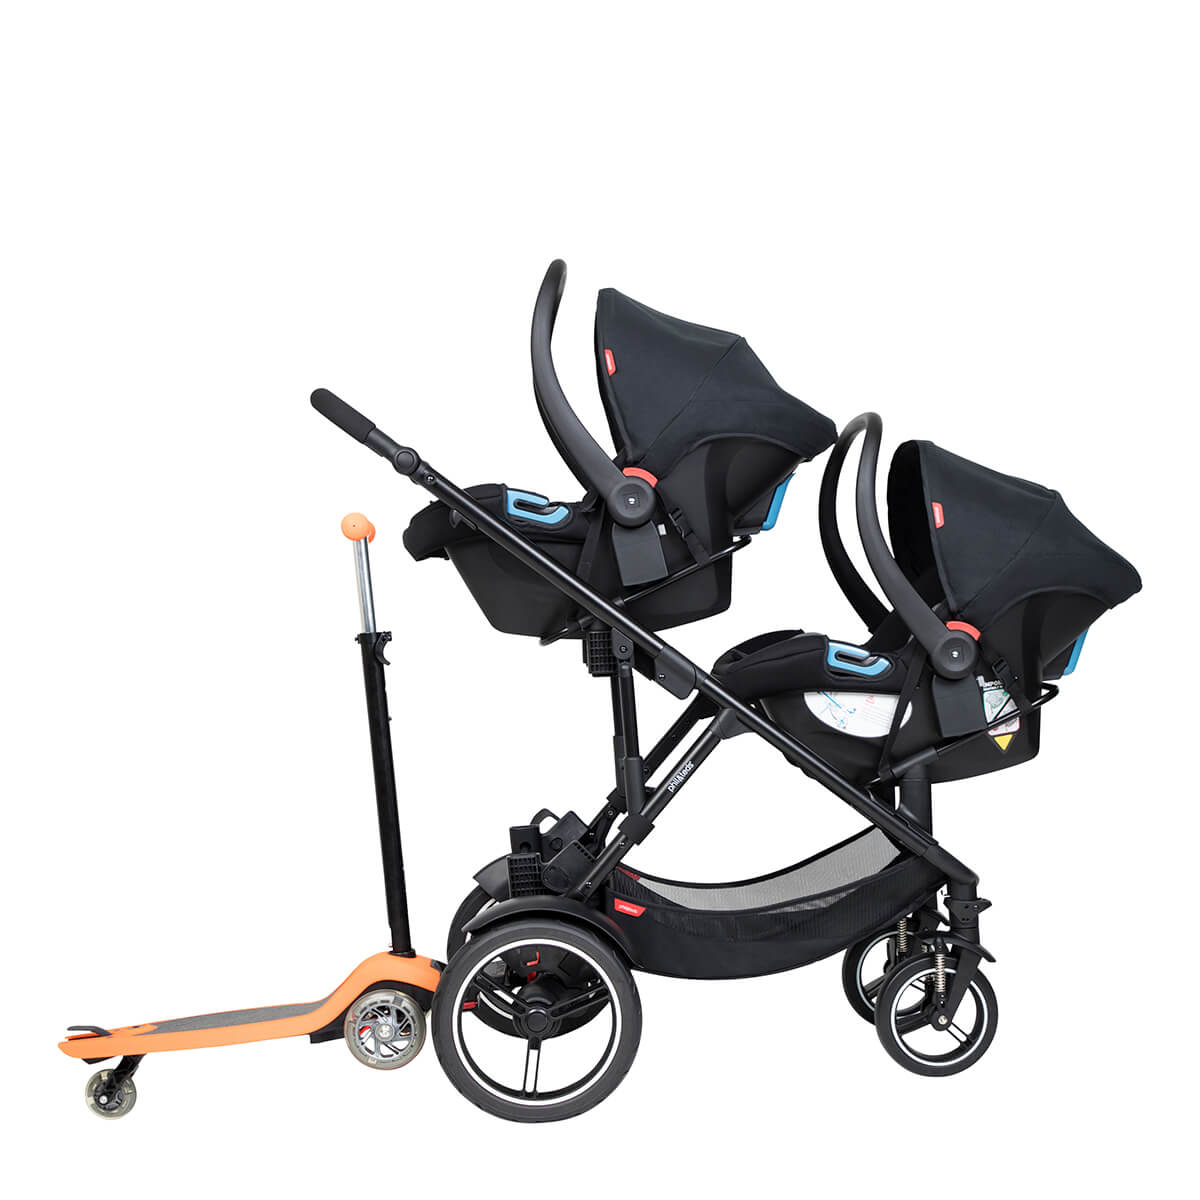 https://cdn.accentuate.io/4394883809385/19119639625833/philteds-voyager-buggy-with-double-travel-systems-and-freerider-stroller-board-in-the-rear-v1633400487377.jpg?1200x1200